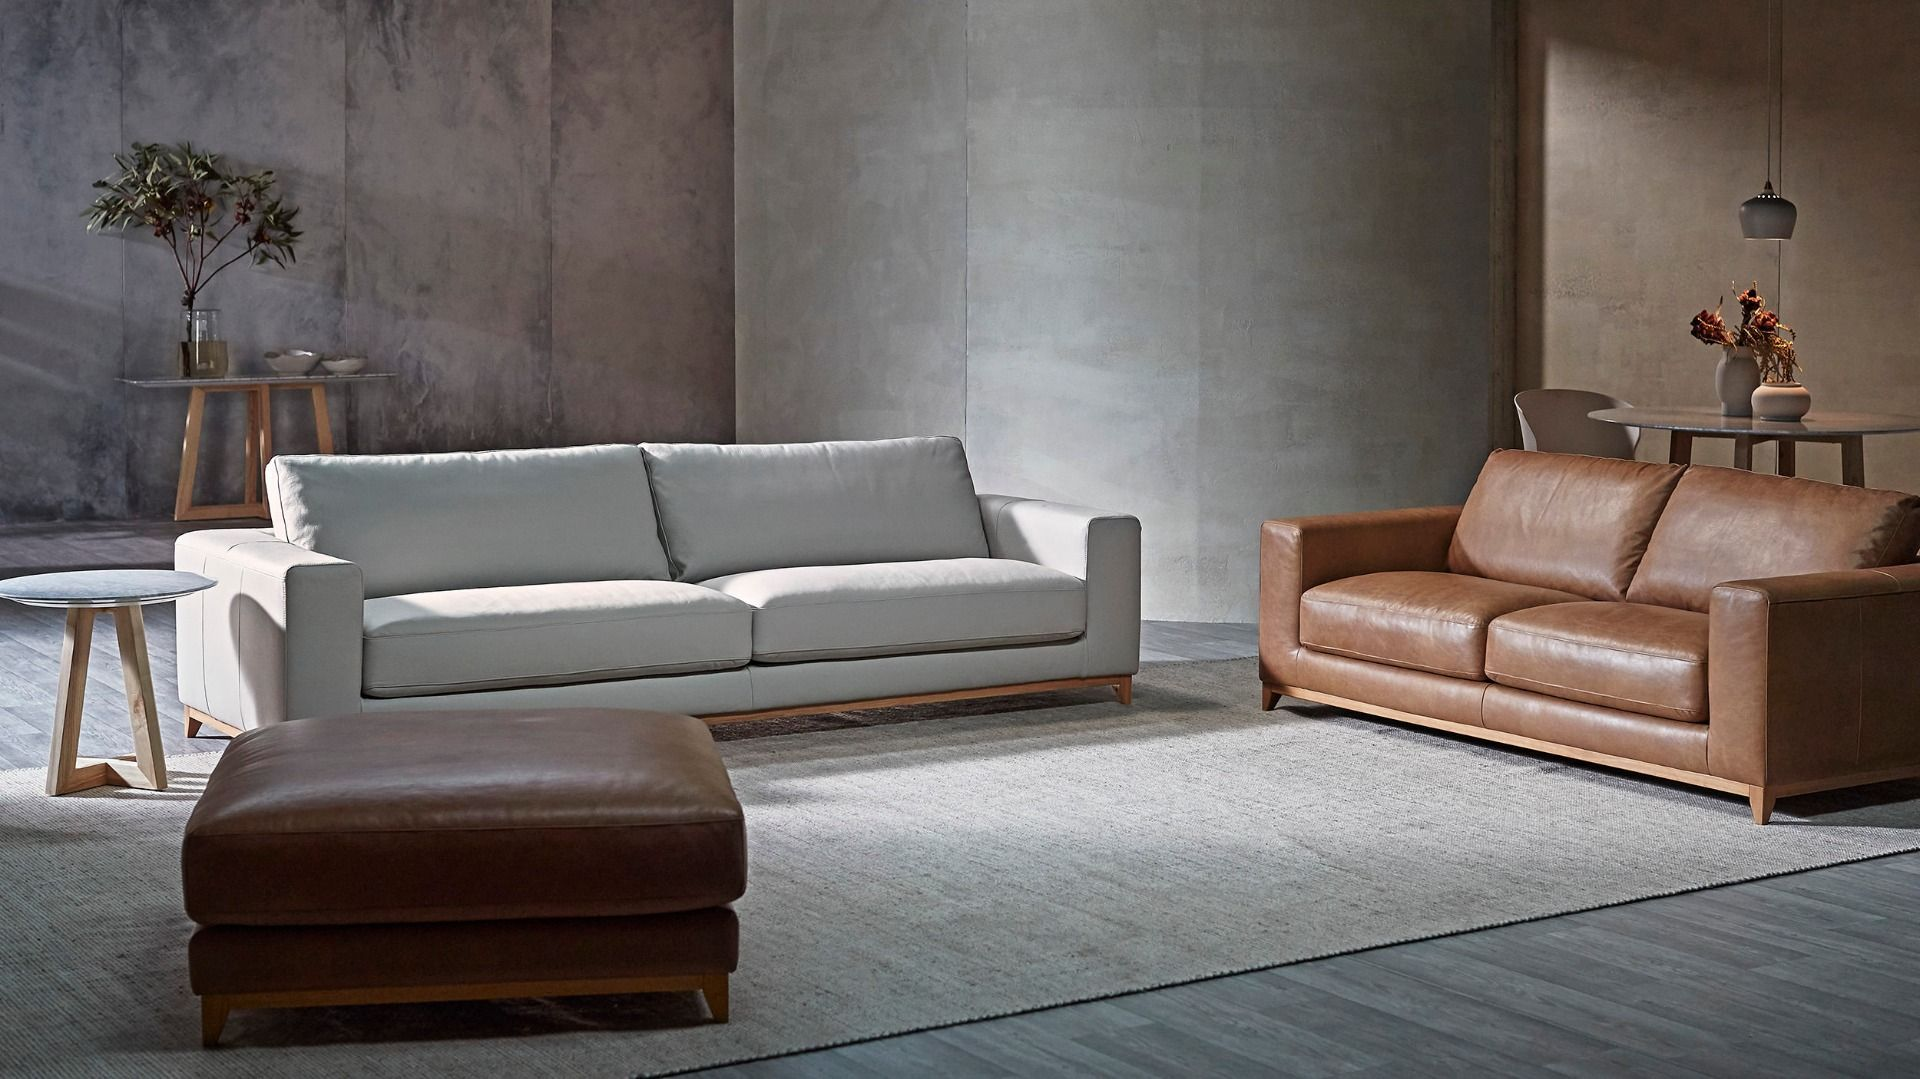 Toscano Nick Scali In 2020 Sofa Bed Lounge Furniture Nz Contemporary Lounge